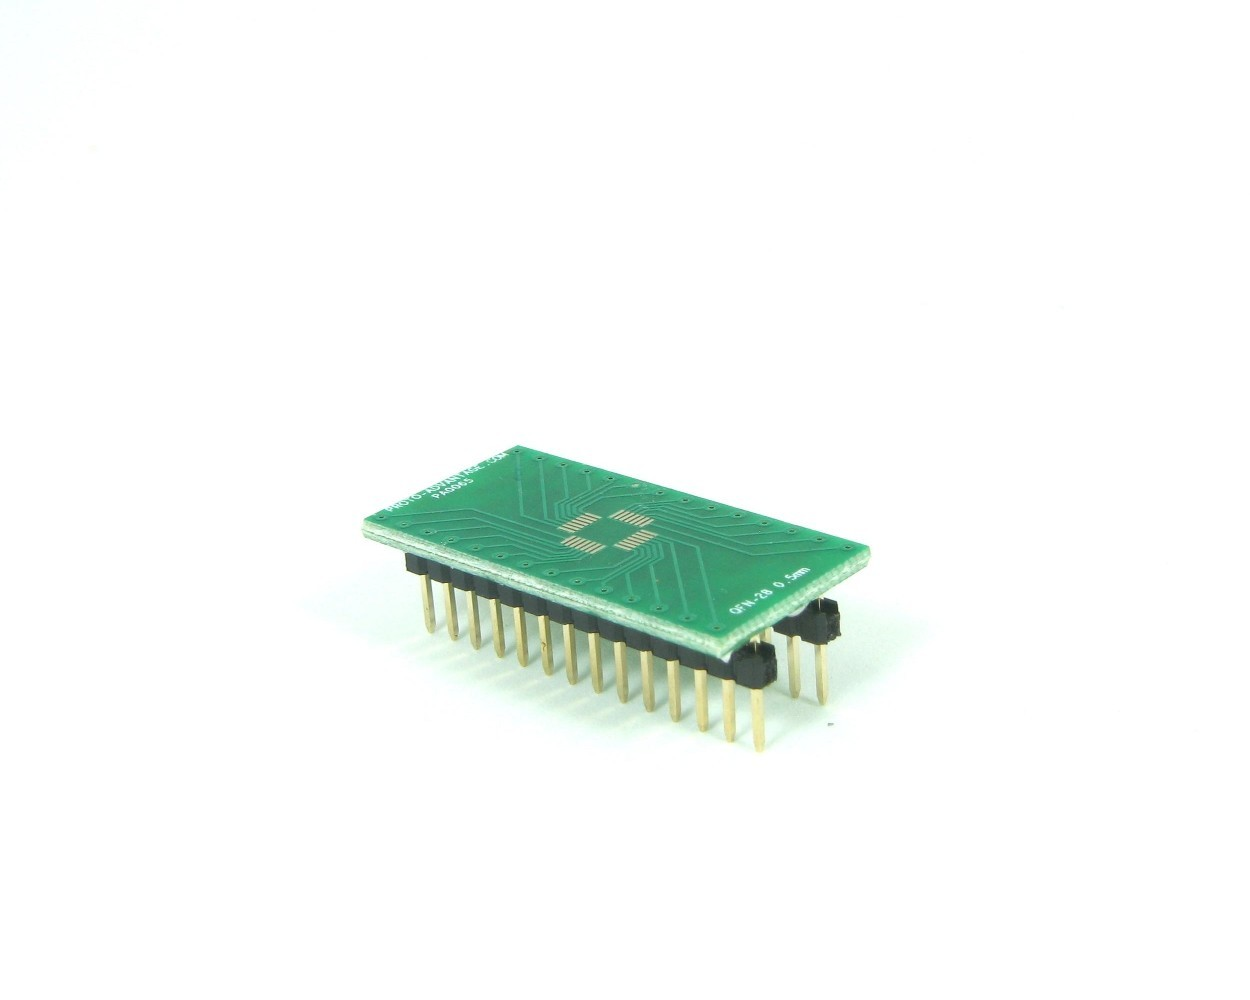 QFN-28 to DIP-28 SMT Adapter (0.5 mm pitch, 5 x 5 mm body)